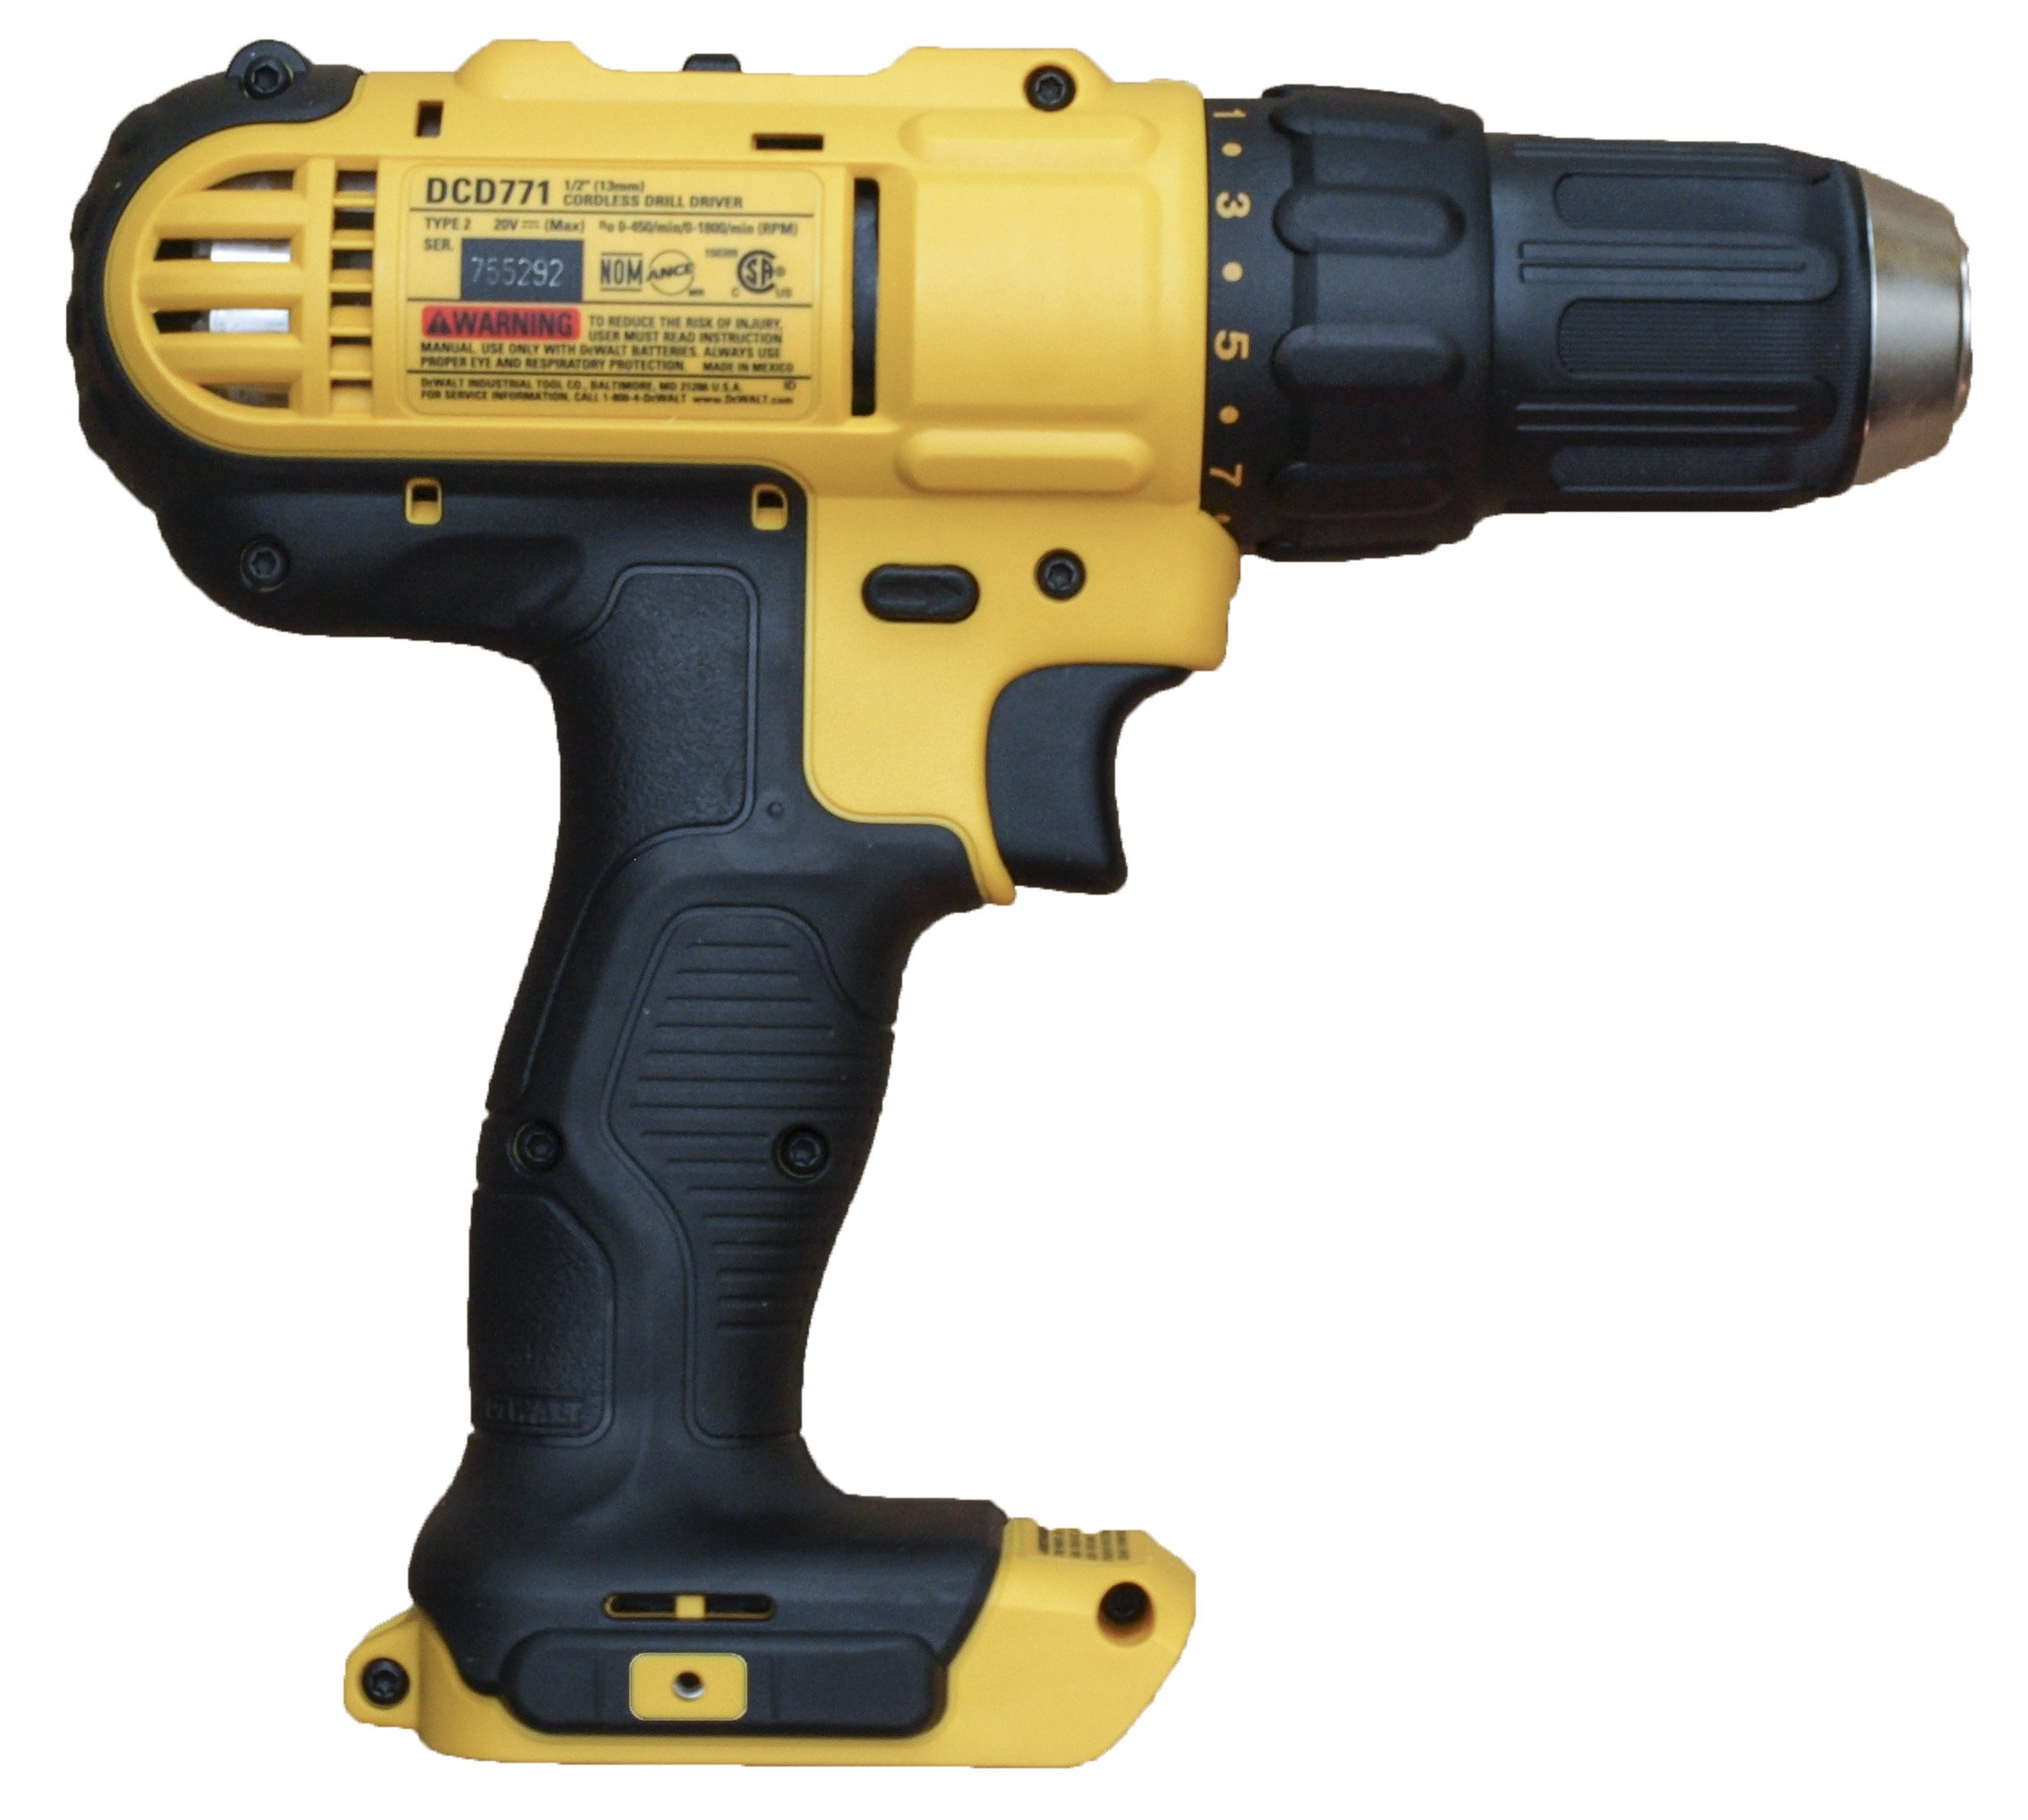 Dewalt DCD771 DCD771B 20V MAX Cordless Lithium-Ion 1/2 Inch Compact Drill Driver - (Bare Tool Only - No Battery or Charger Included)